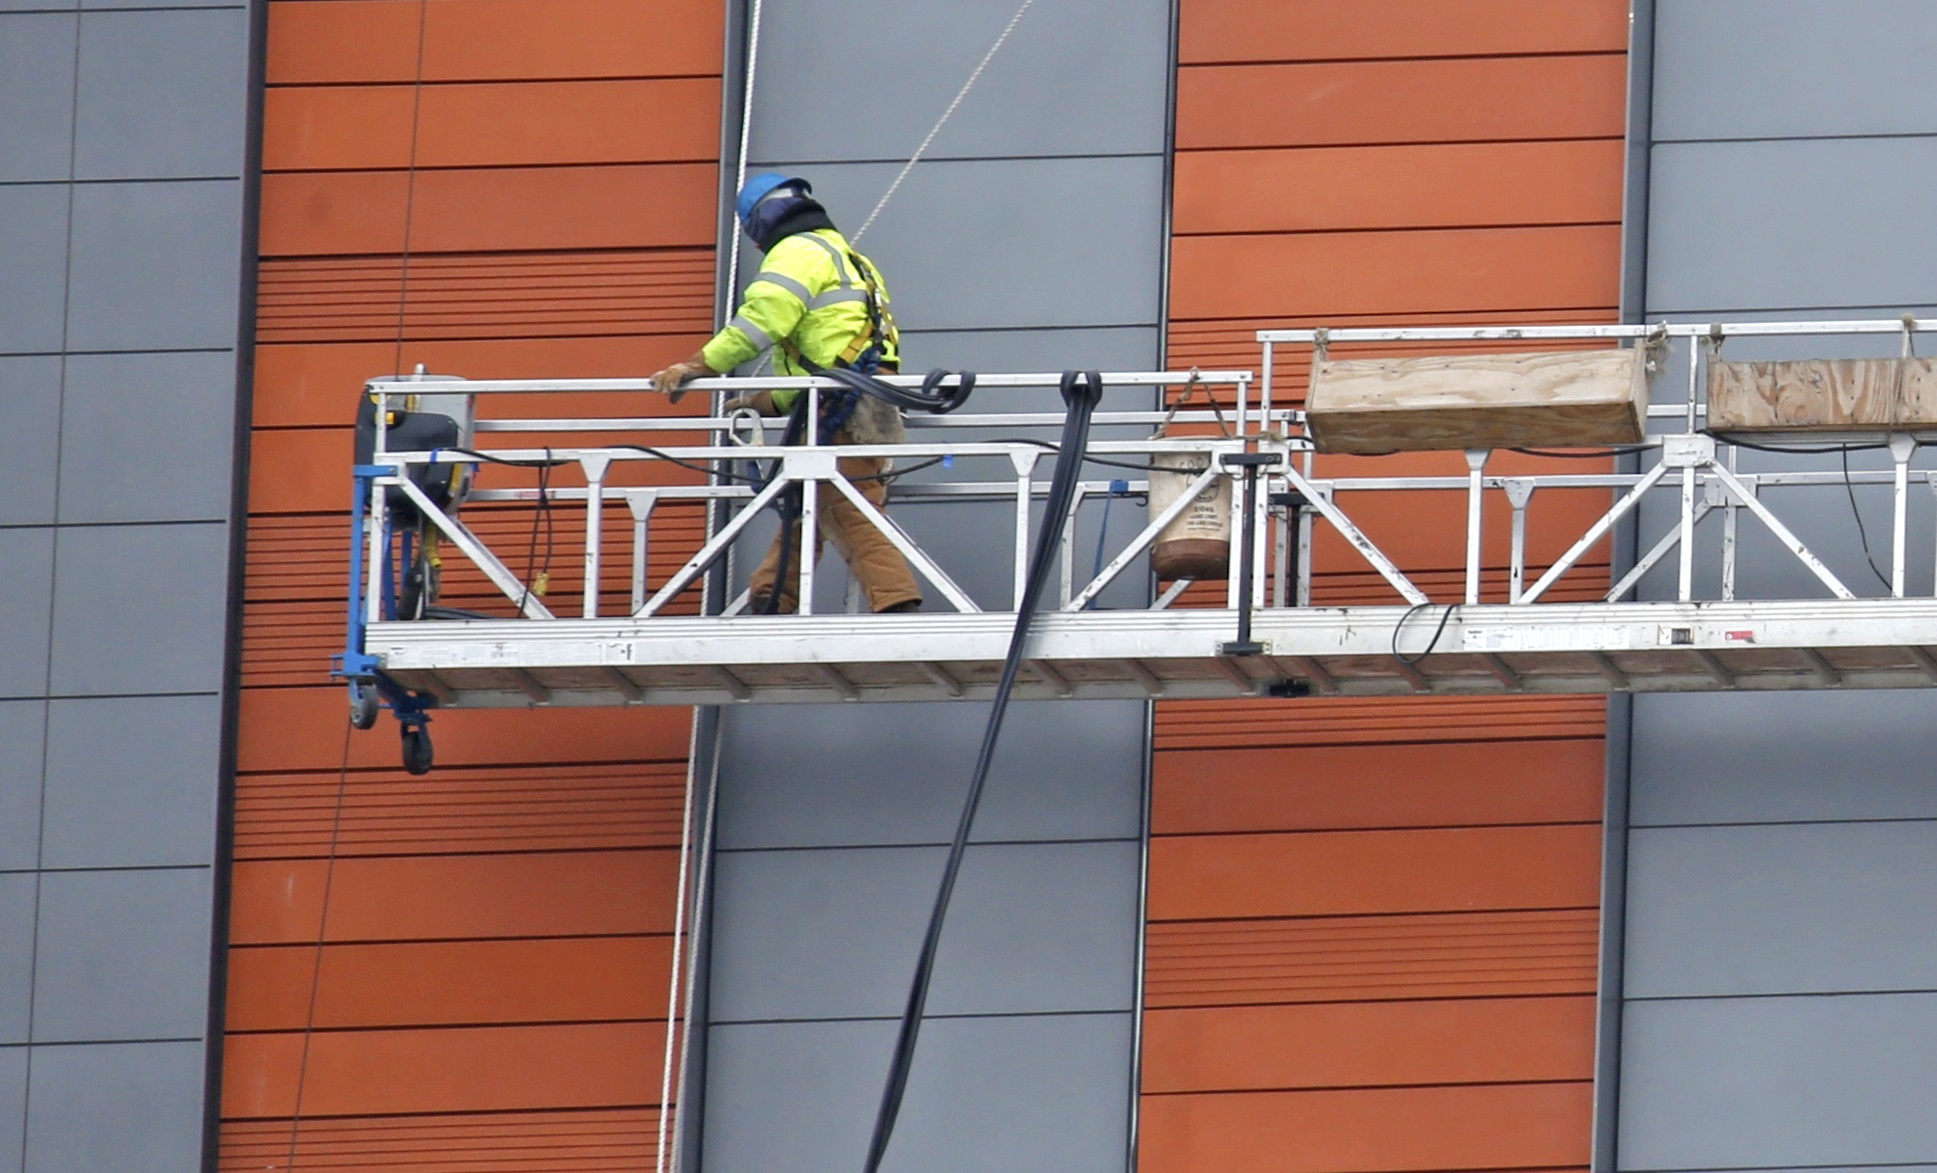 A worker installs the tiled outer siding of a new building on the Buffalo Niagara Medical Campus that will house UB's Jacobs School of Medicine and Biomedical Sciences. (Robert Kirkham/ Buffalo News)